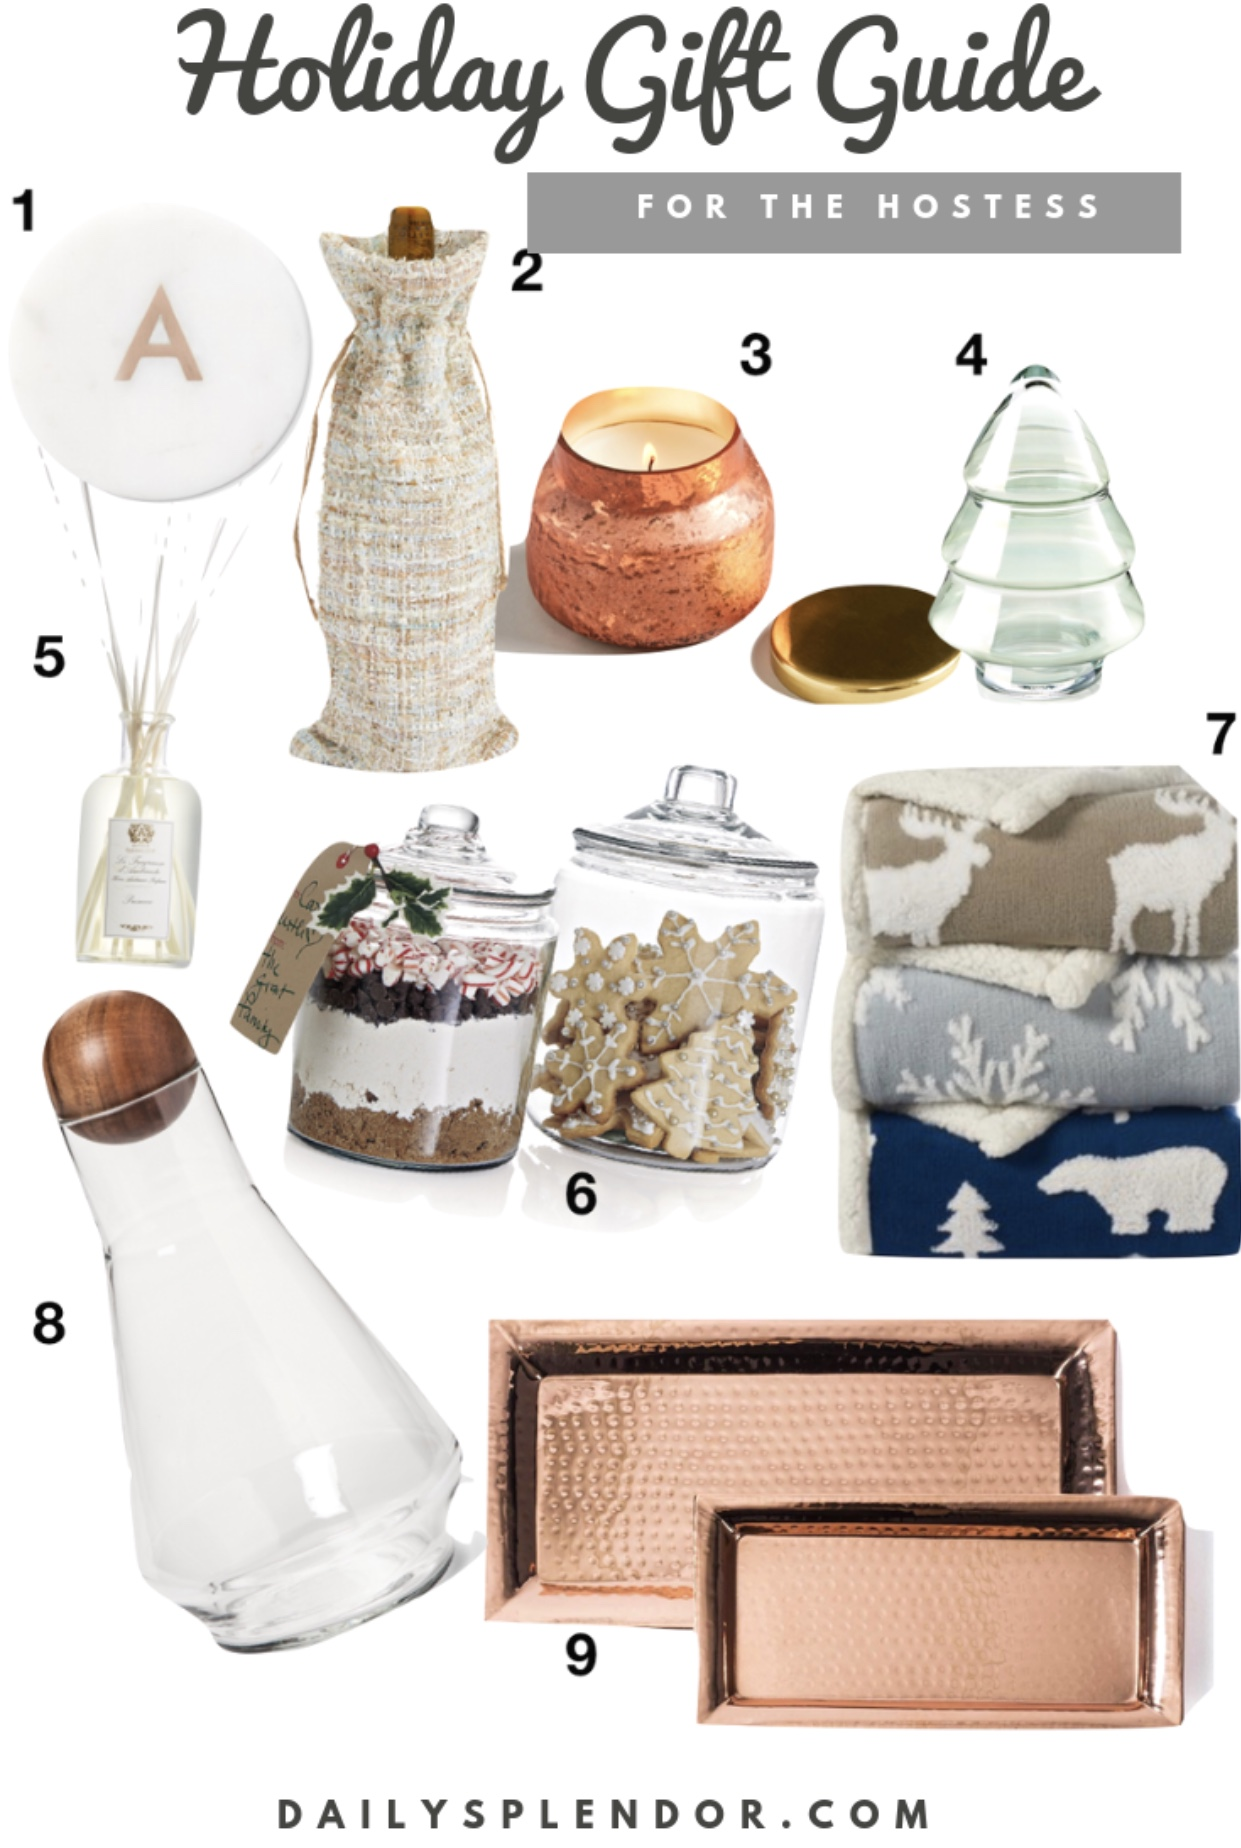 2018 Holiday Gift Guide | Daily Splendor Life and Style Blog || candles, anthropologie, target, home decor, #giftguide #holidaygiftguide #2018giftguide #hostessgifts #hostessgiftideas #crateandbarrel #nordstrom #target